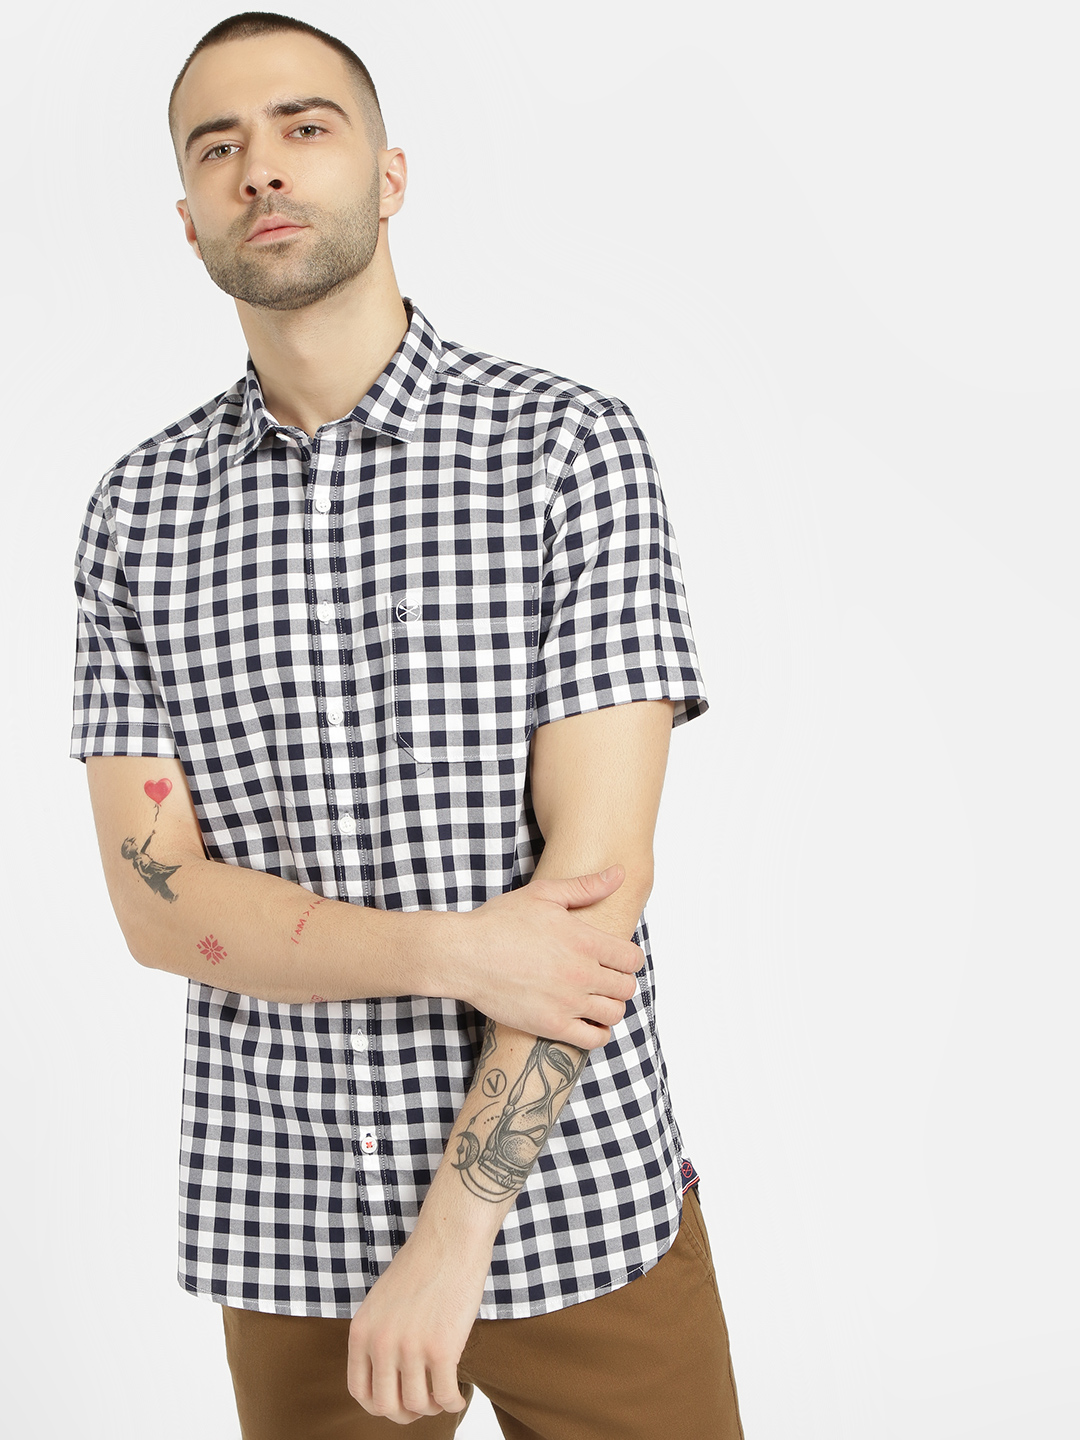 SCULLERS White Short Sleeve Gingham Check Shirt 1